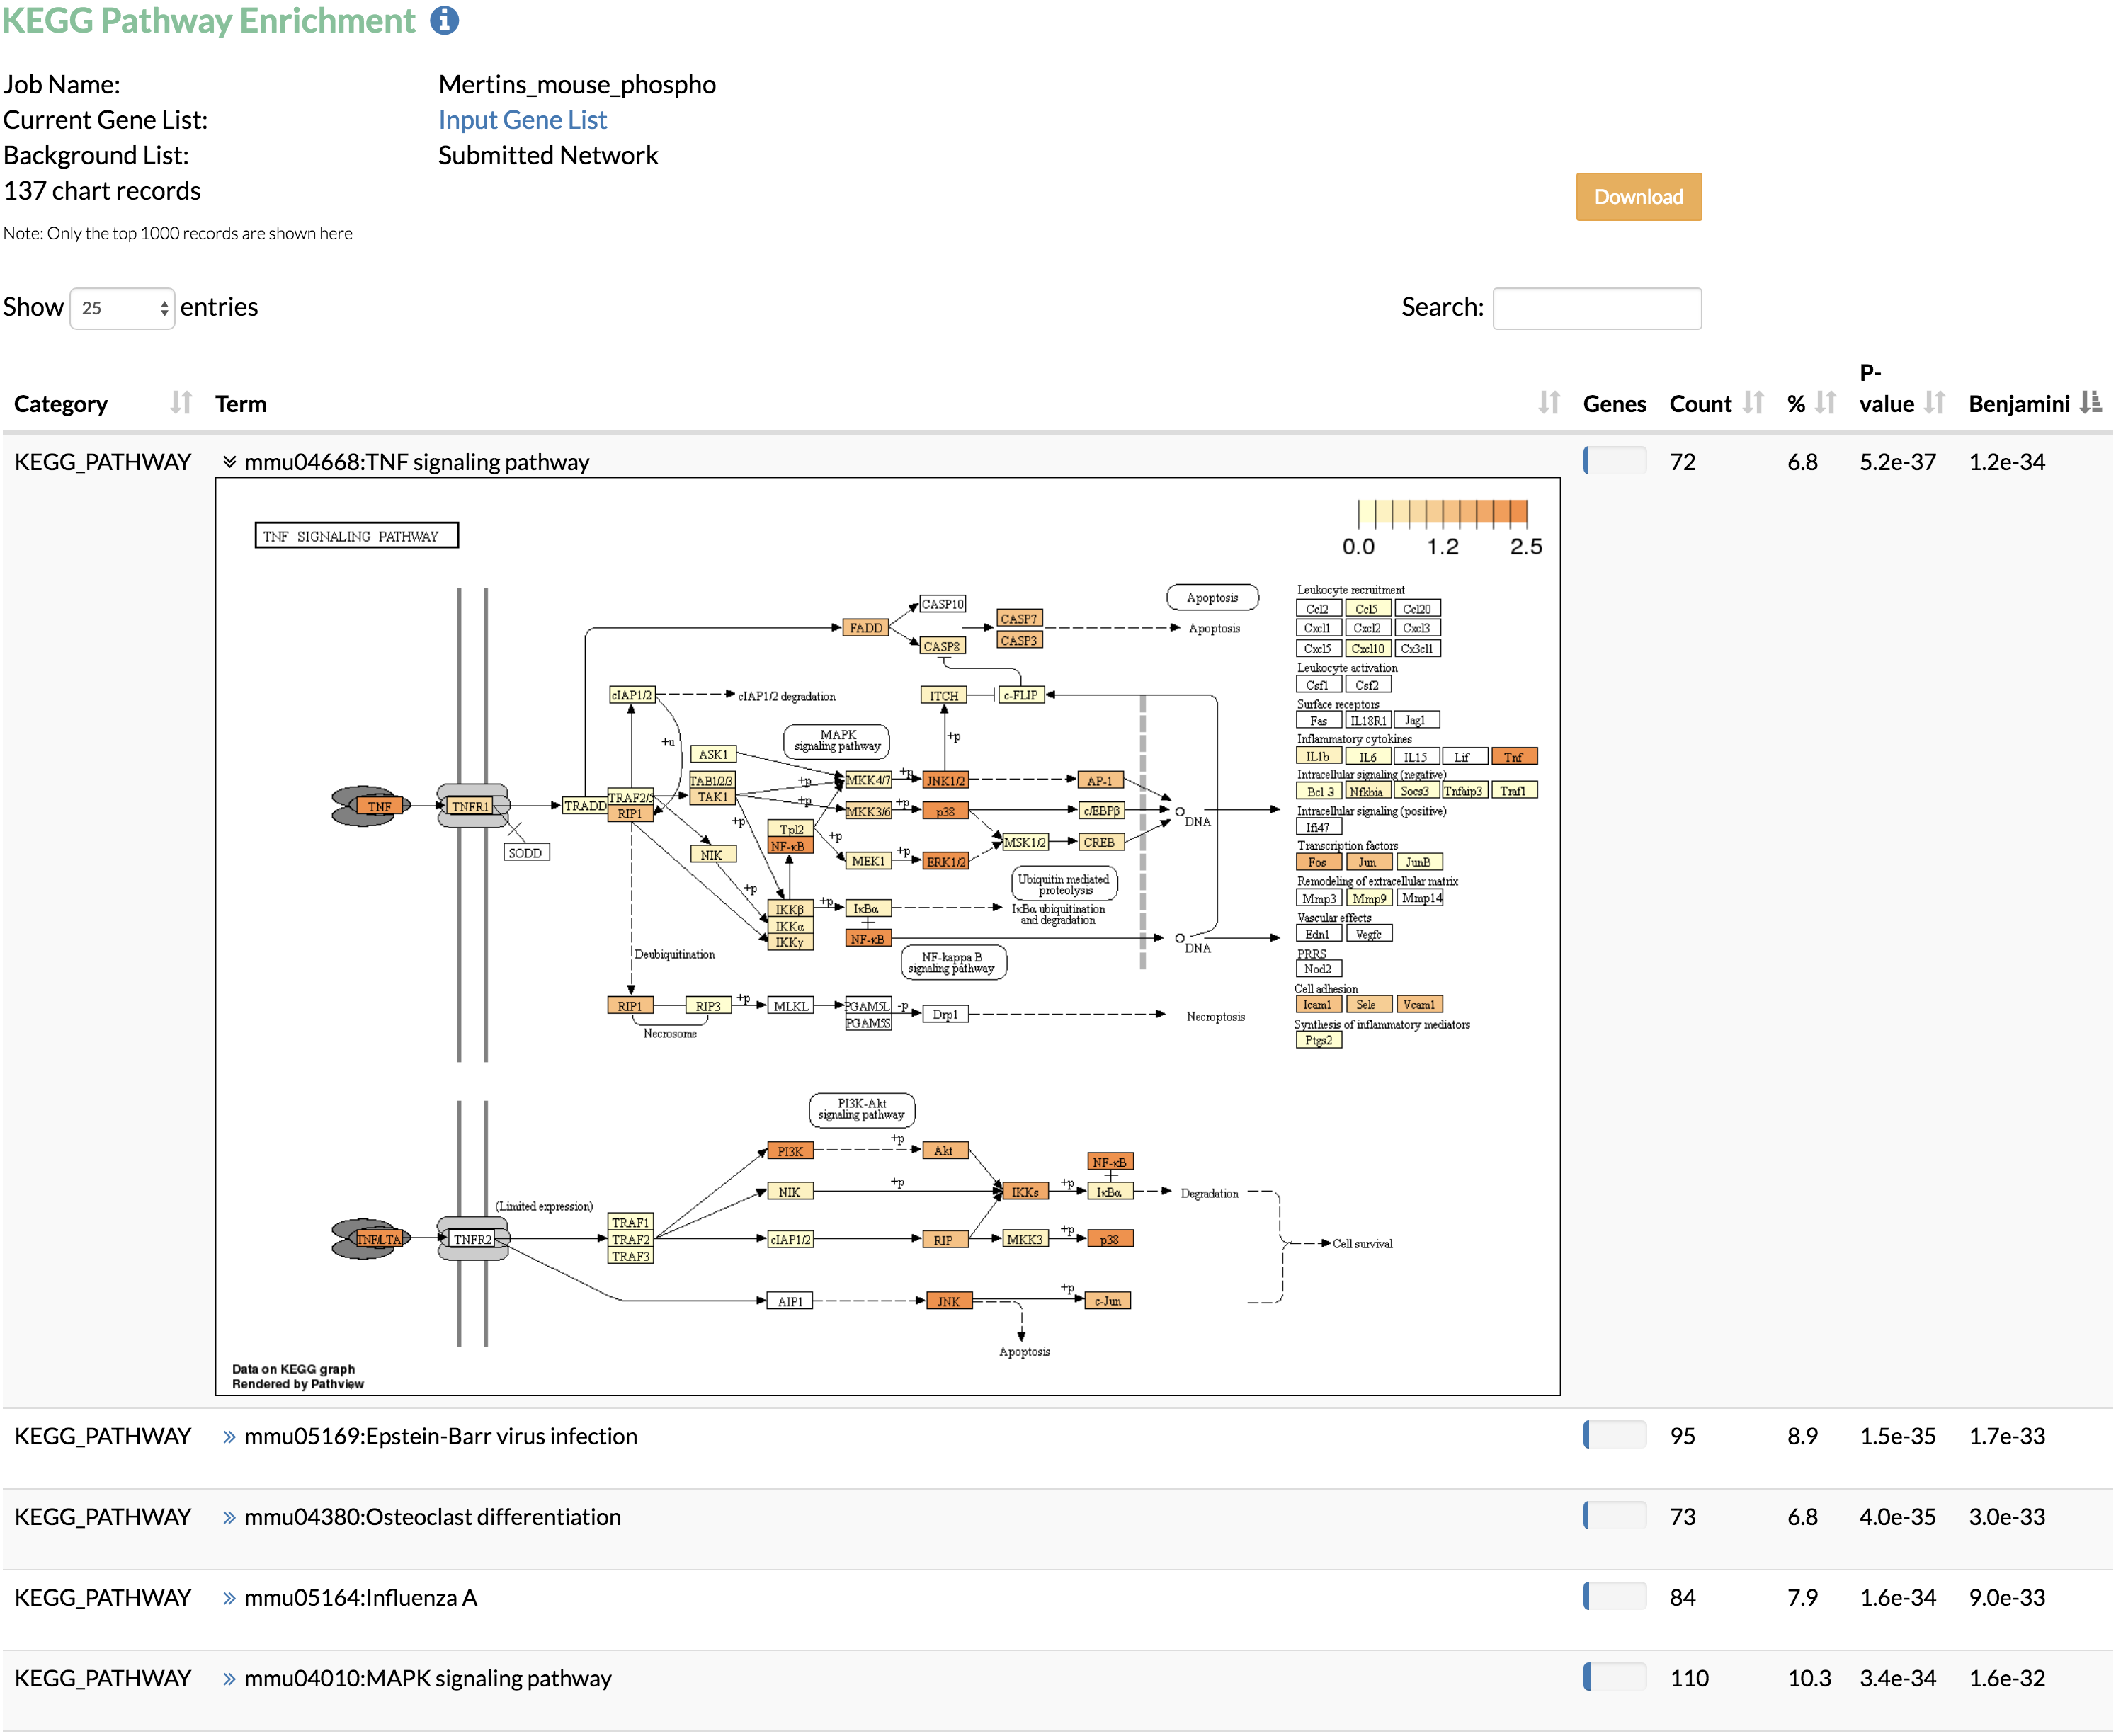 TimeXNet Web - Identify active gene networks and pathways